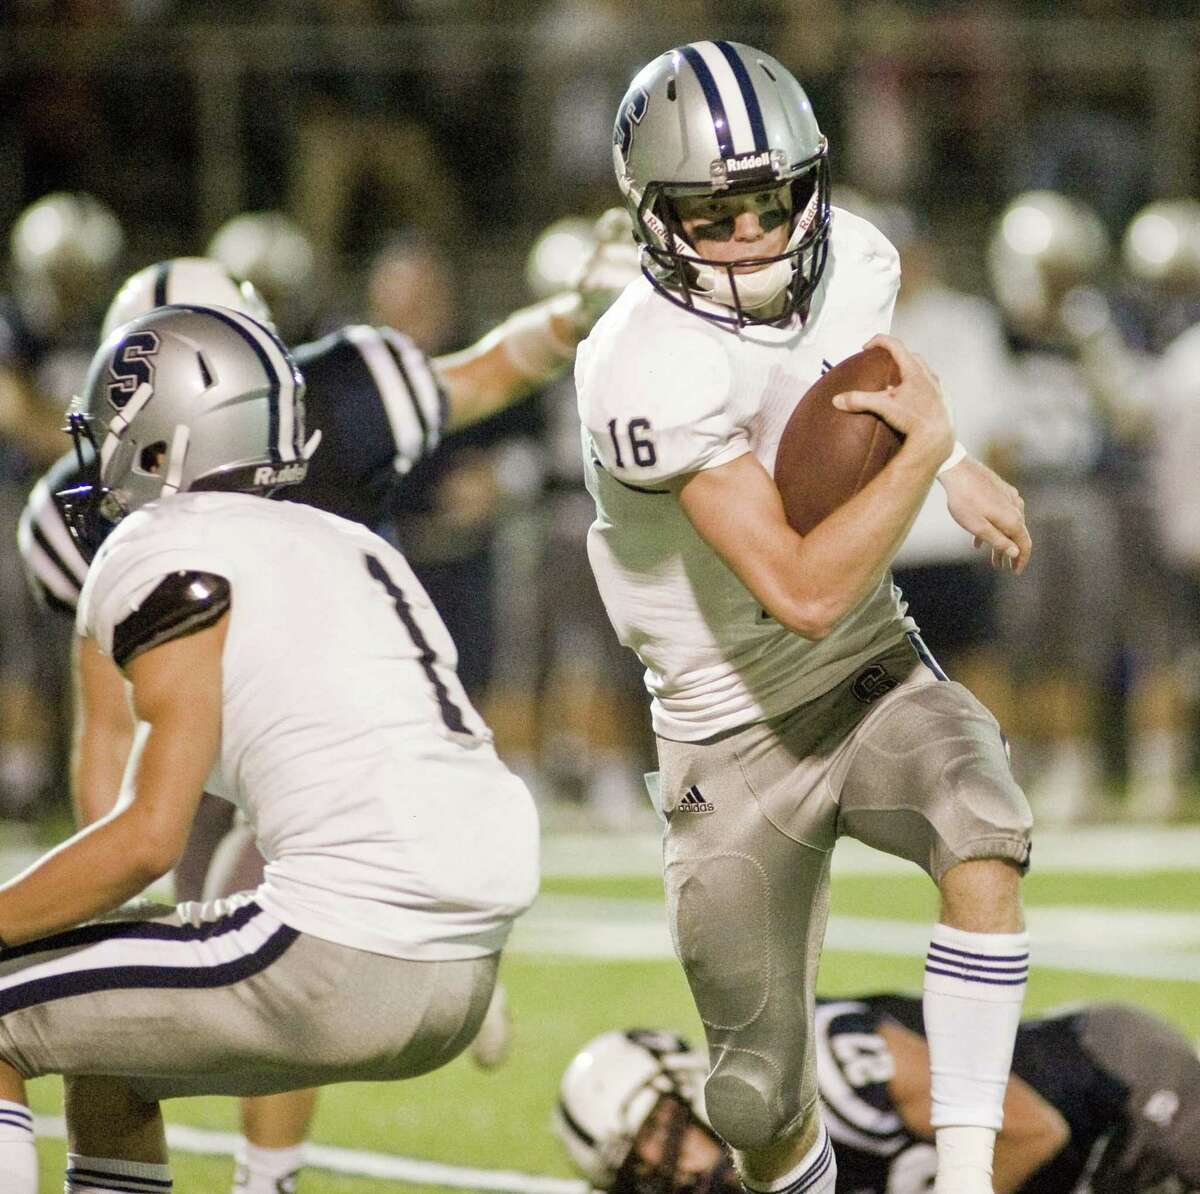 Staples High School quarterback Daniel Thompson carries the ball during a game against Wilton High School, played at Wilton. Friday, Sept. 15, 2017